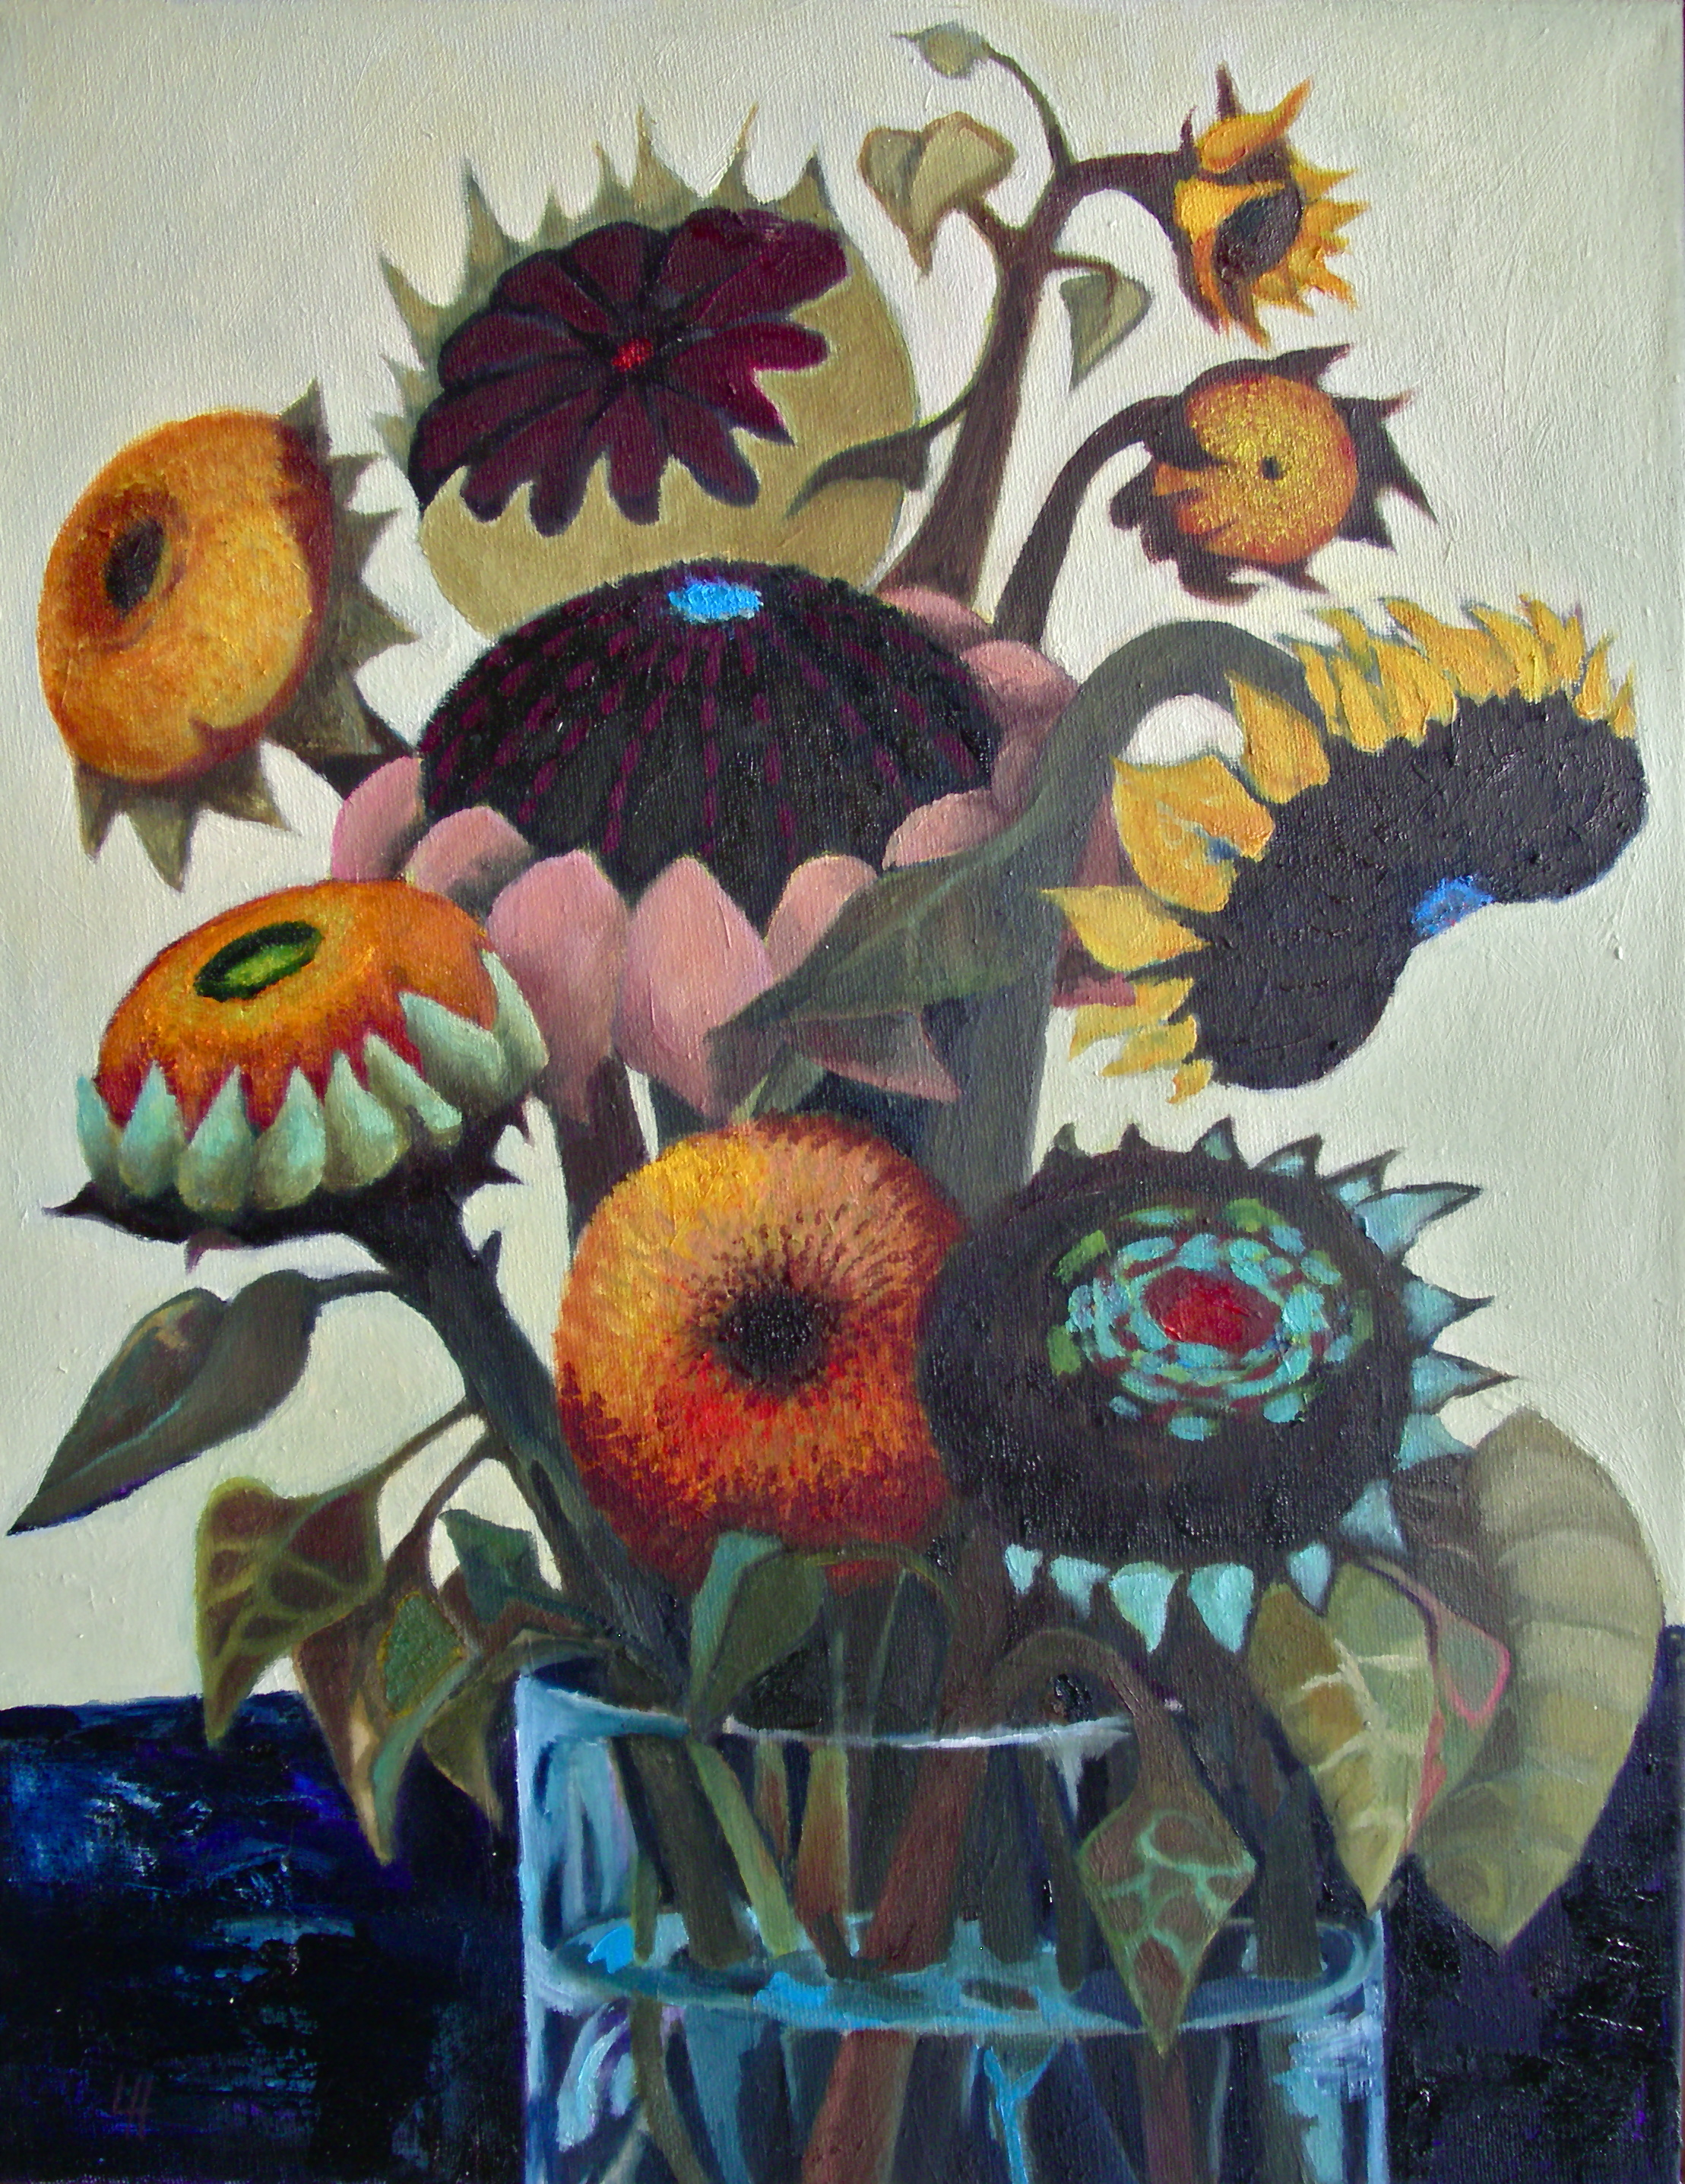 Vase of Sunflowers II  [36x46cm] oil on canvas, 2013